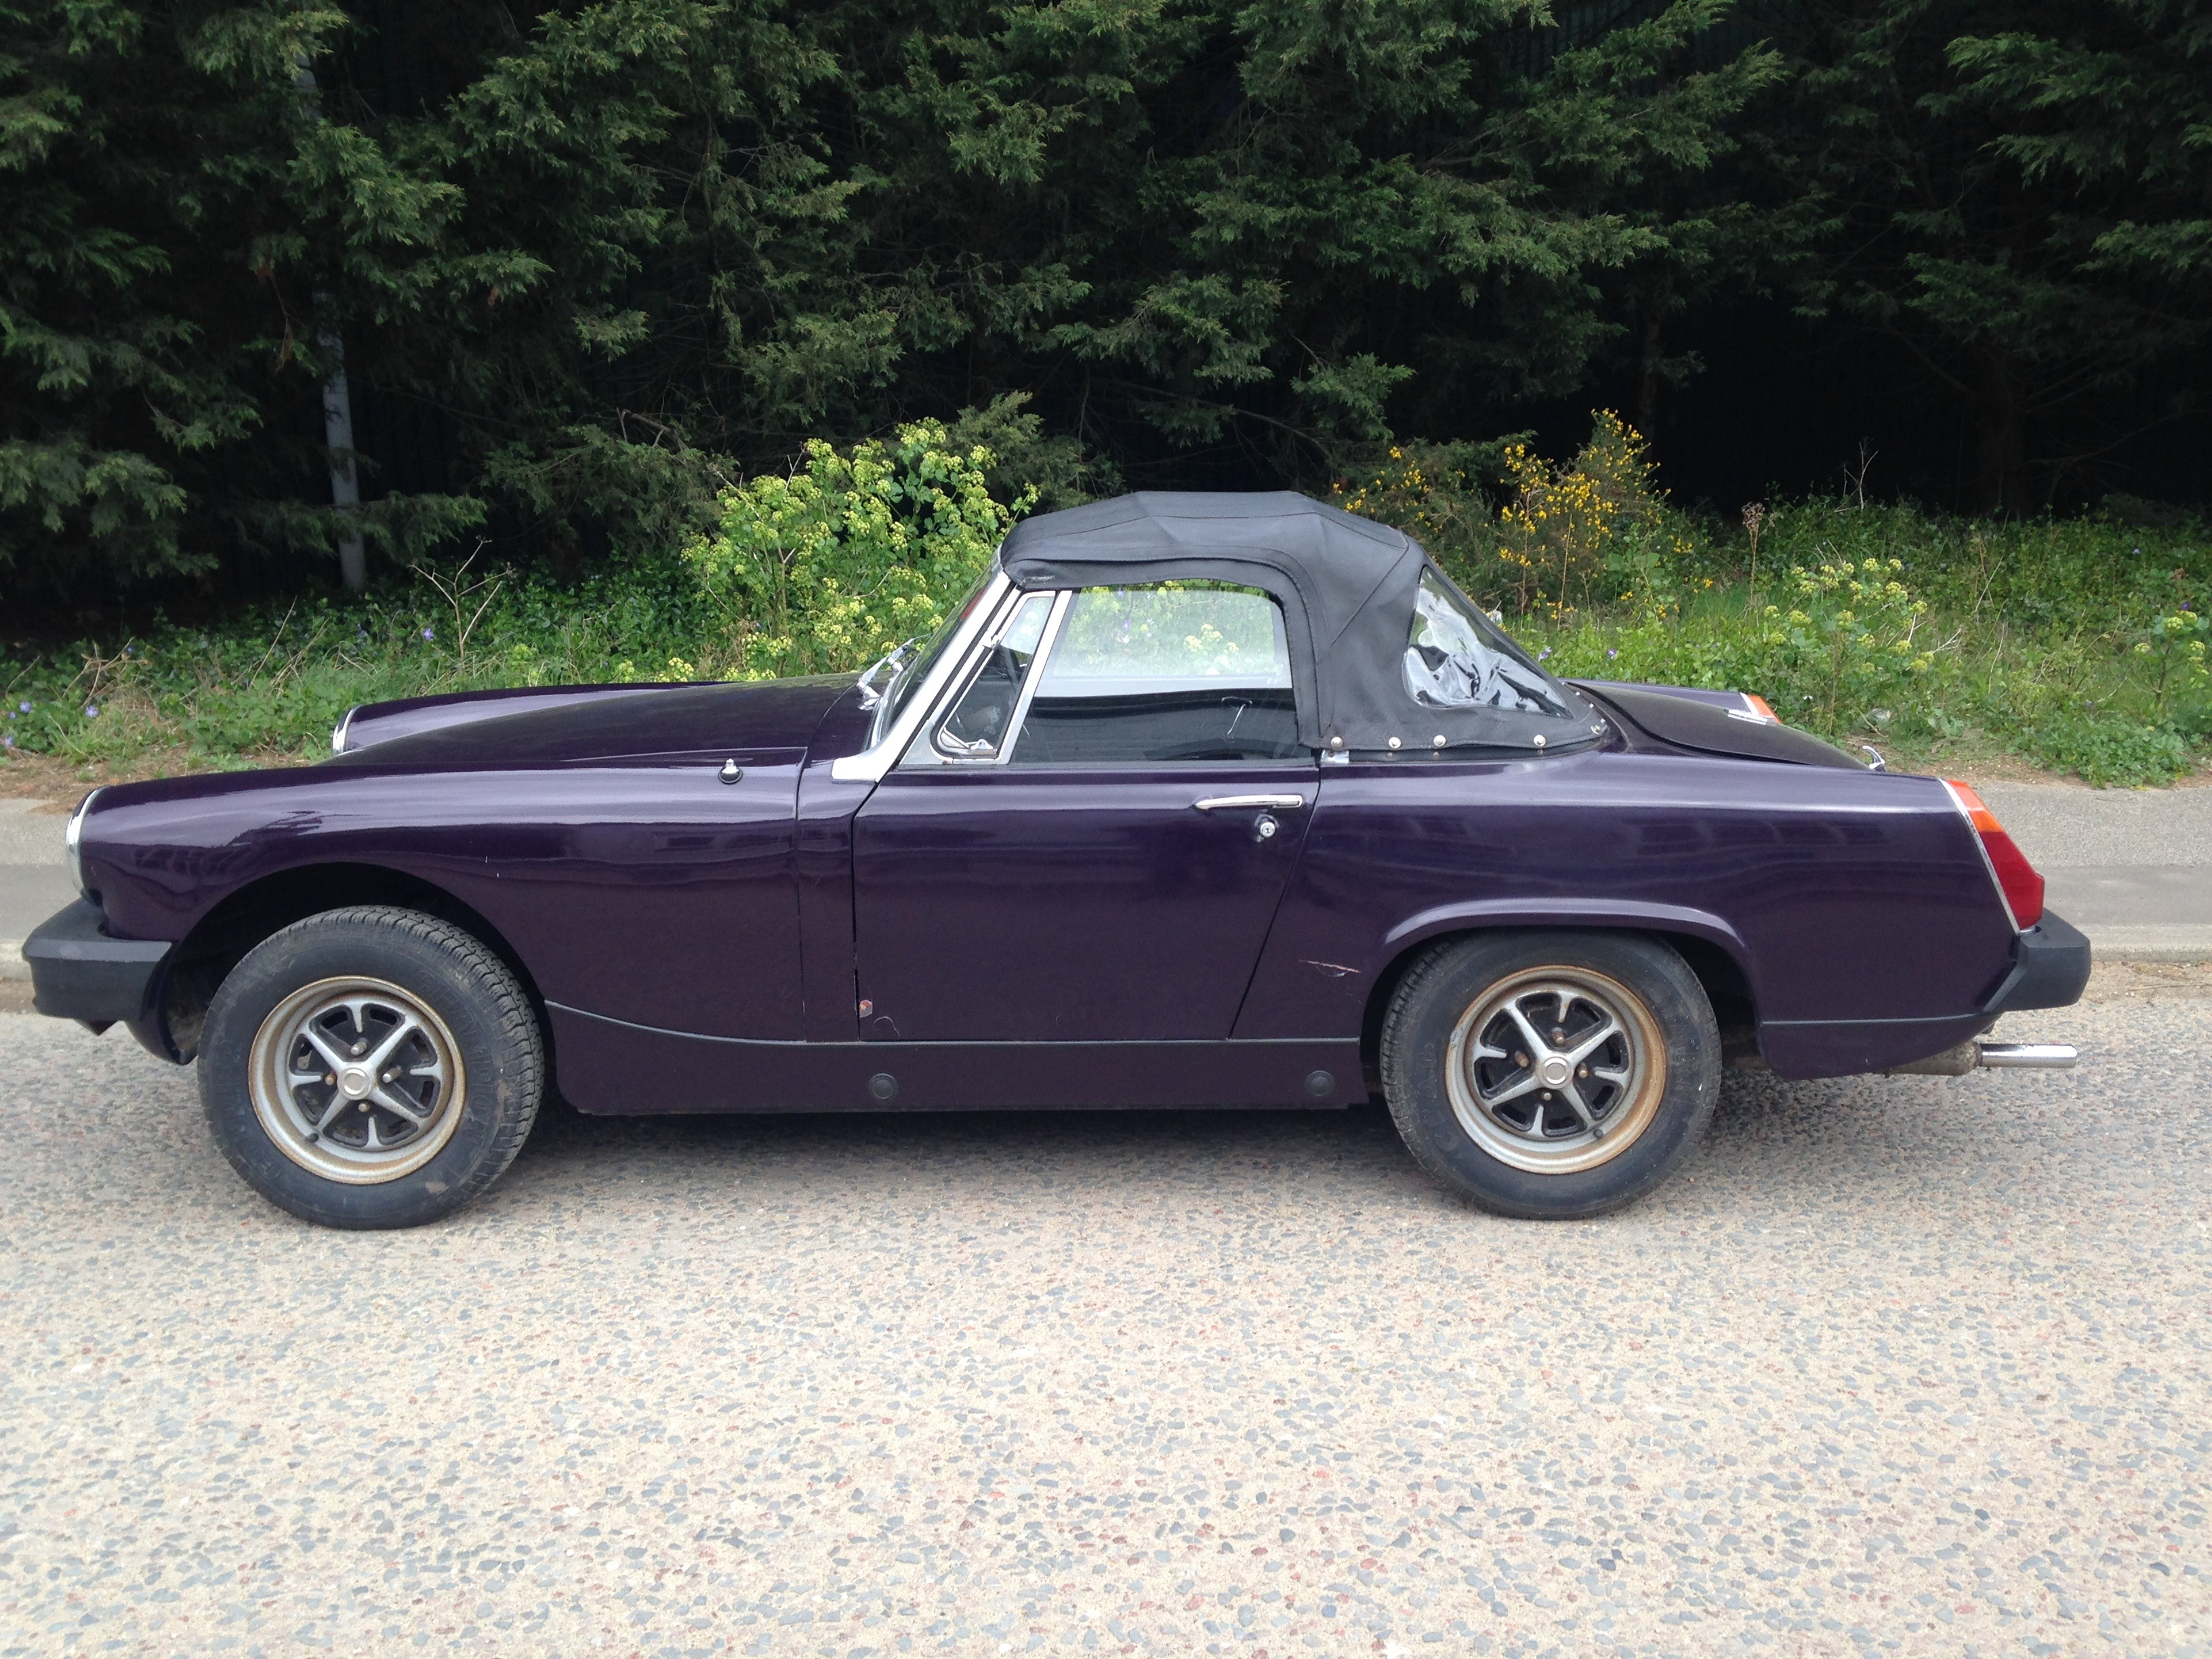 1980 Mg Midget 1500 Here We Have A Car That Has Been